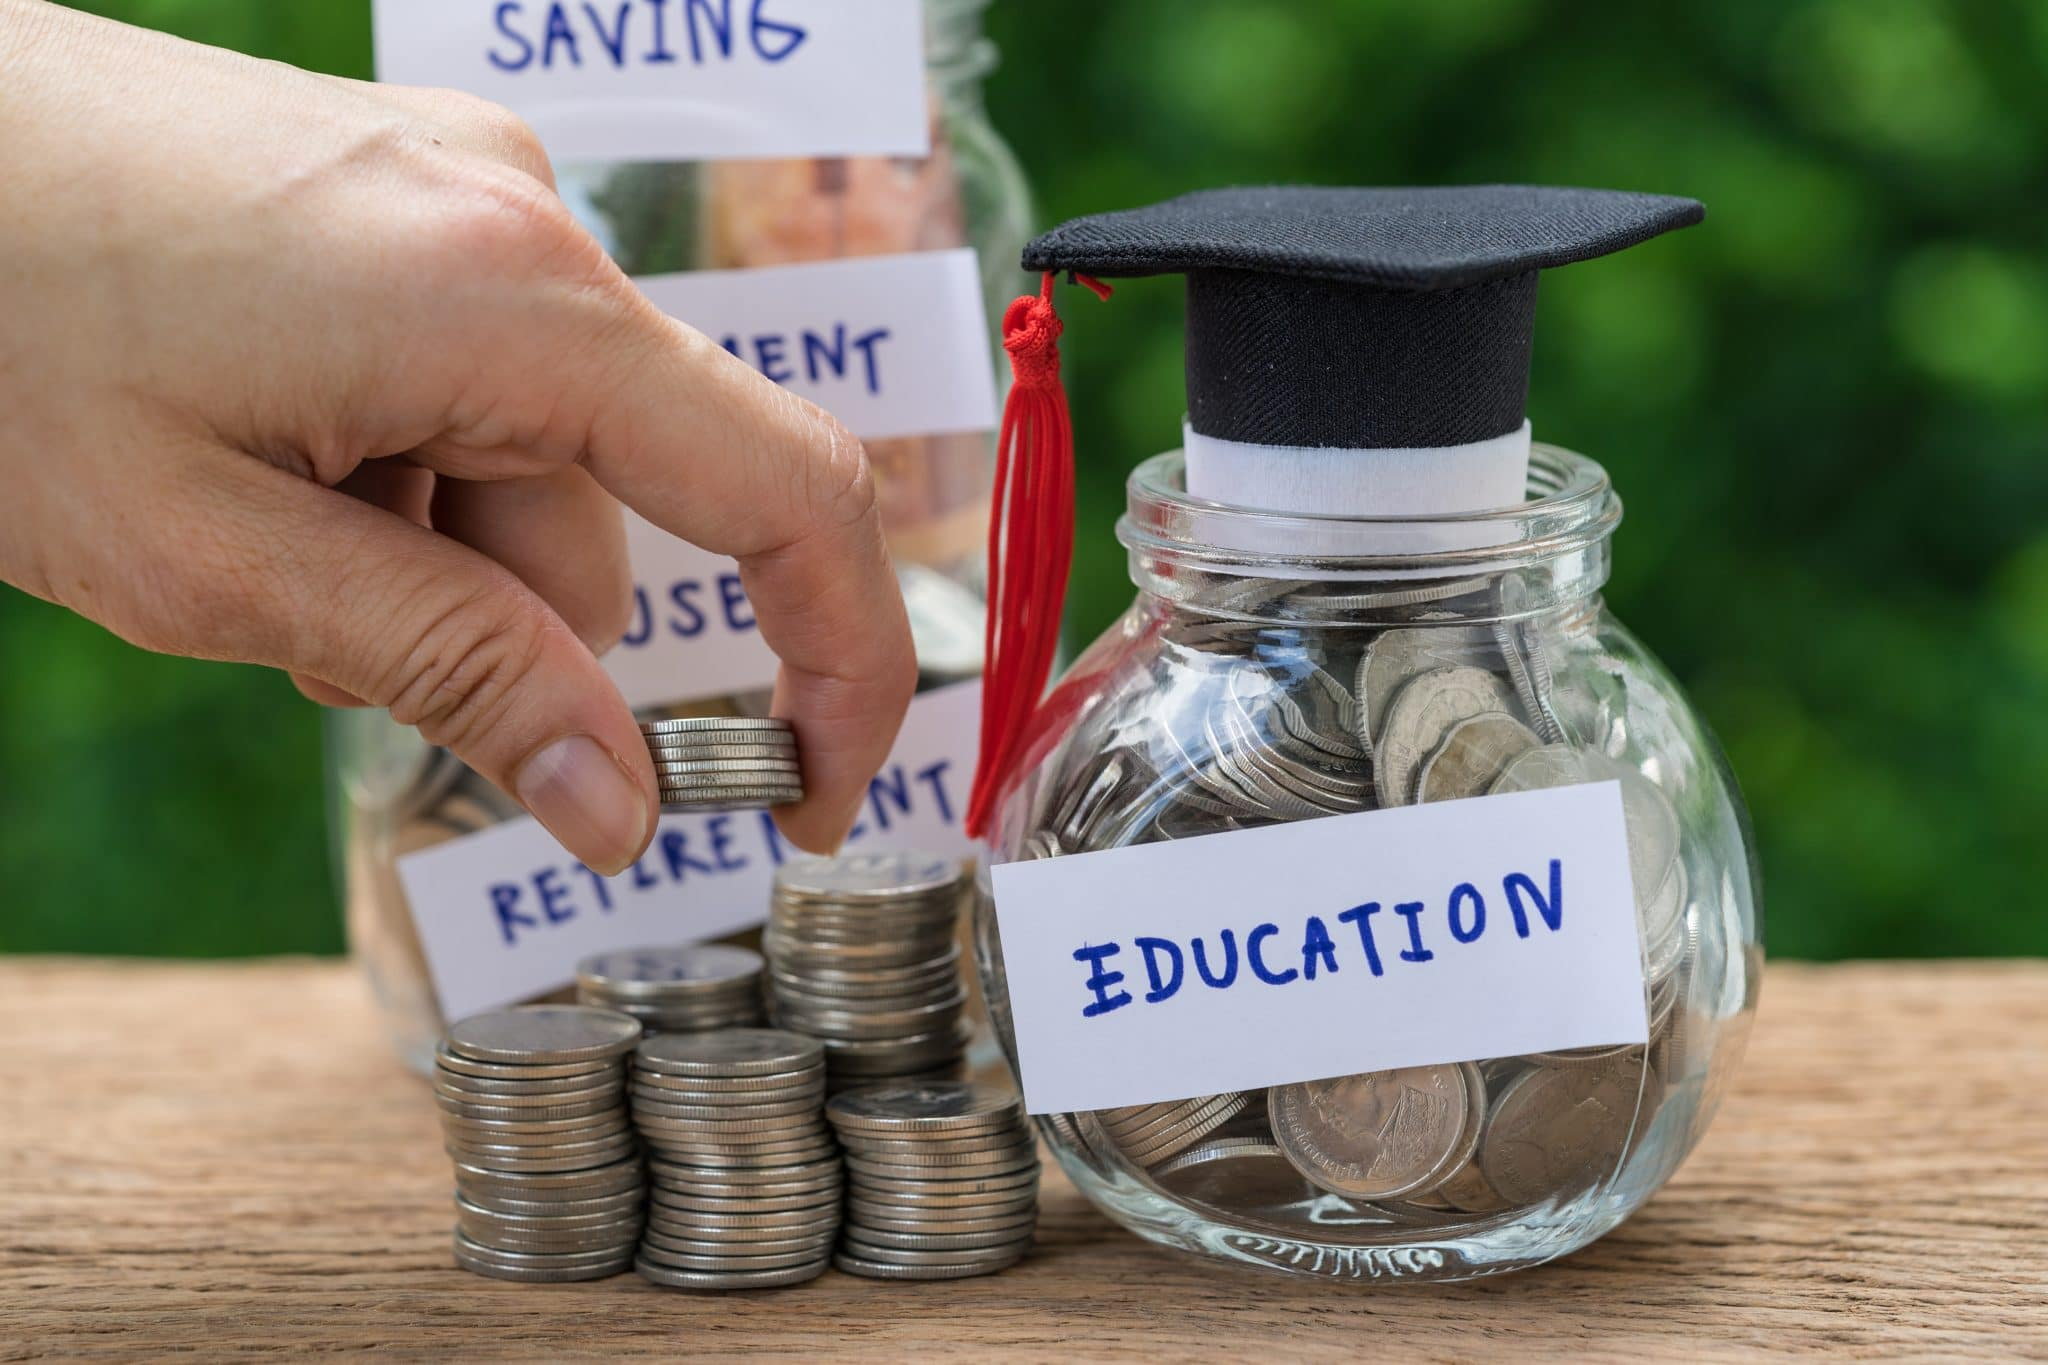 Woman hand holding stack of coins money and glass jar with full of coins and graduates hat label as Education, education or savings concept.